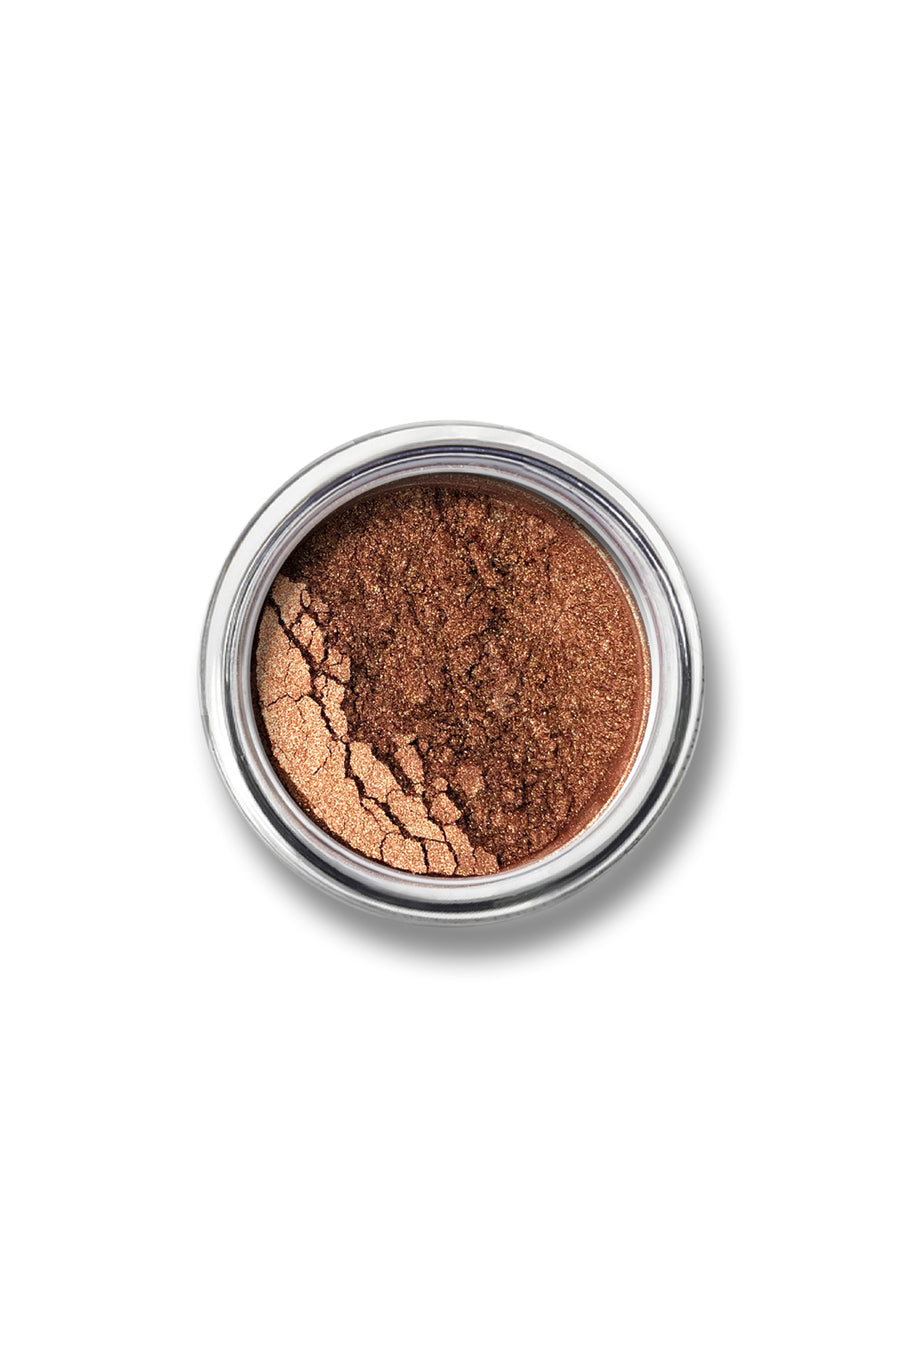 Shimmer Eyeshadow #34 - Taupe Brown - Blend Mineral Cosmetics